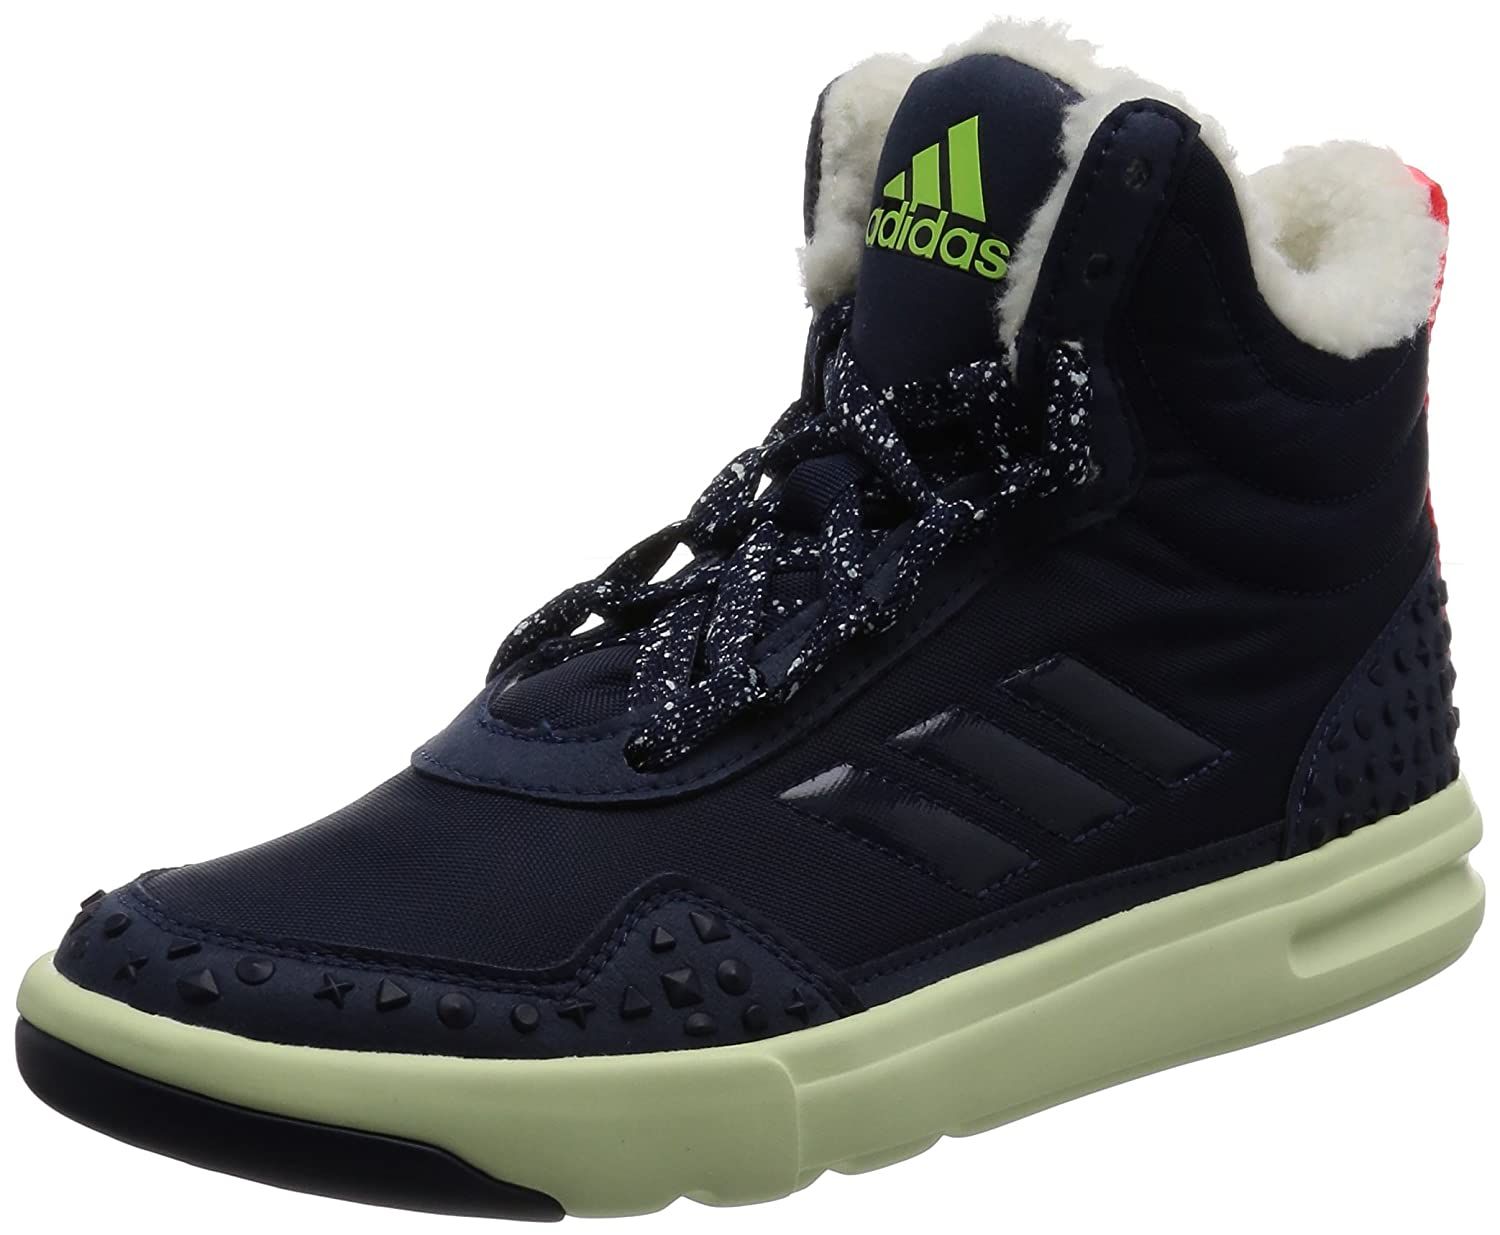 Adidas Irina Women HW16 5.5 - associate-degree.de a8804acb16